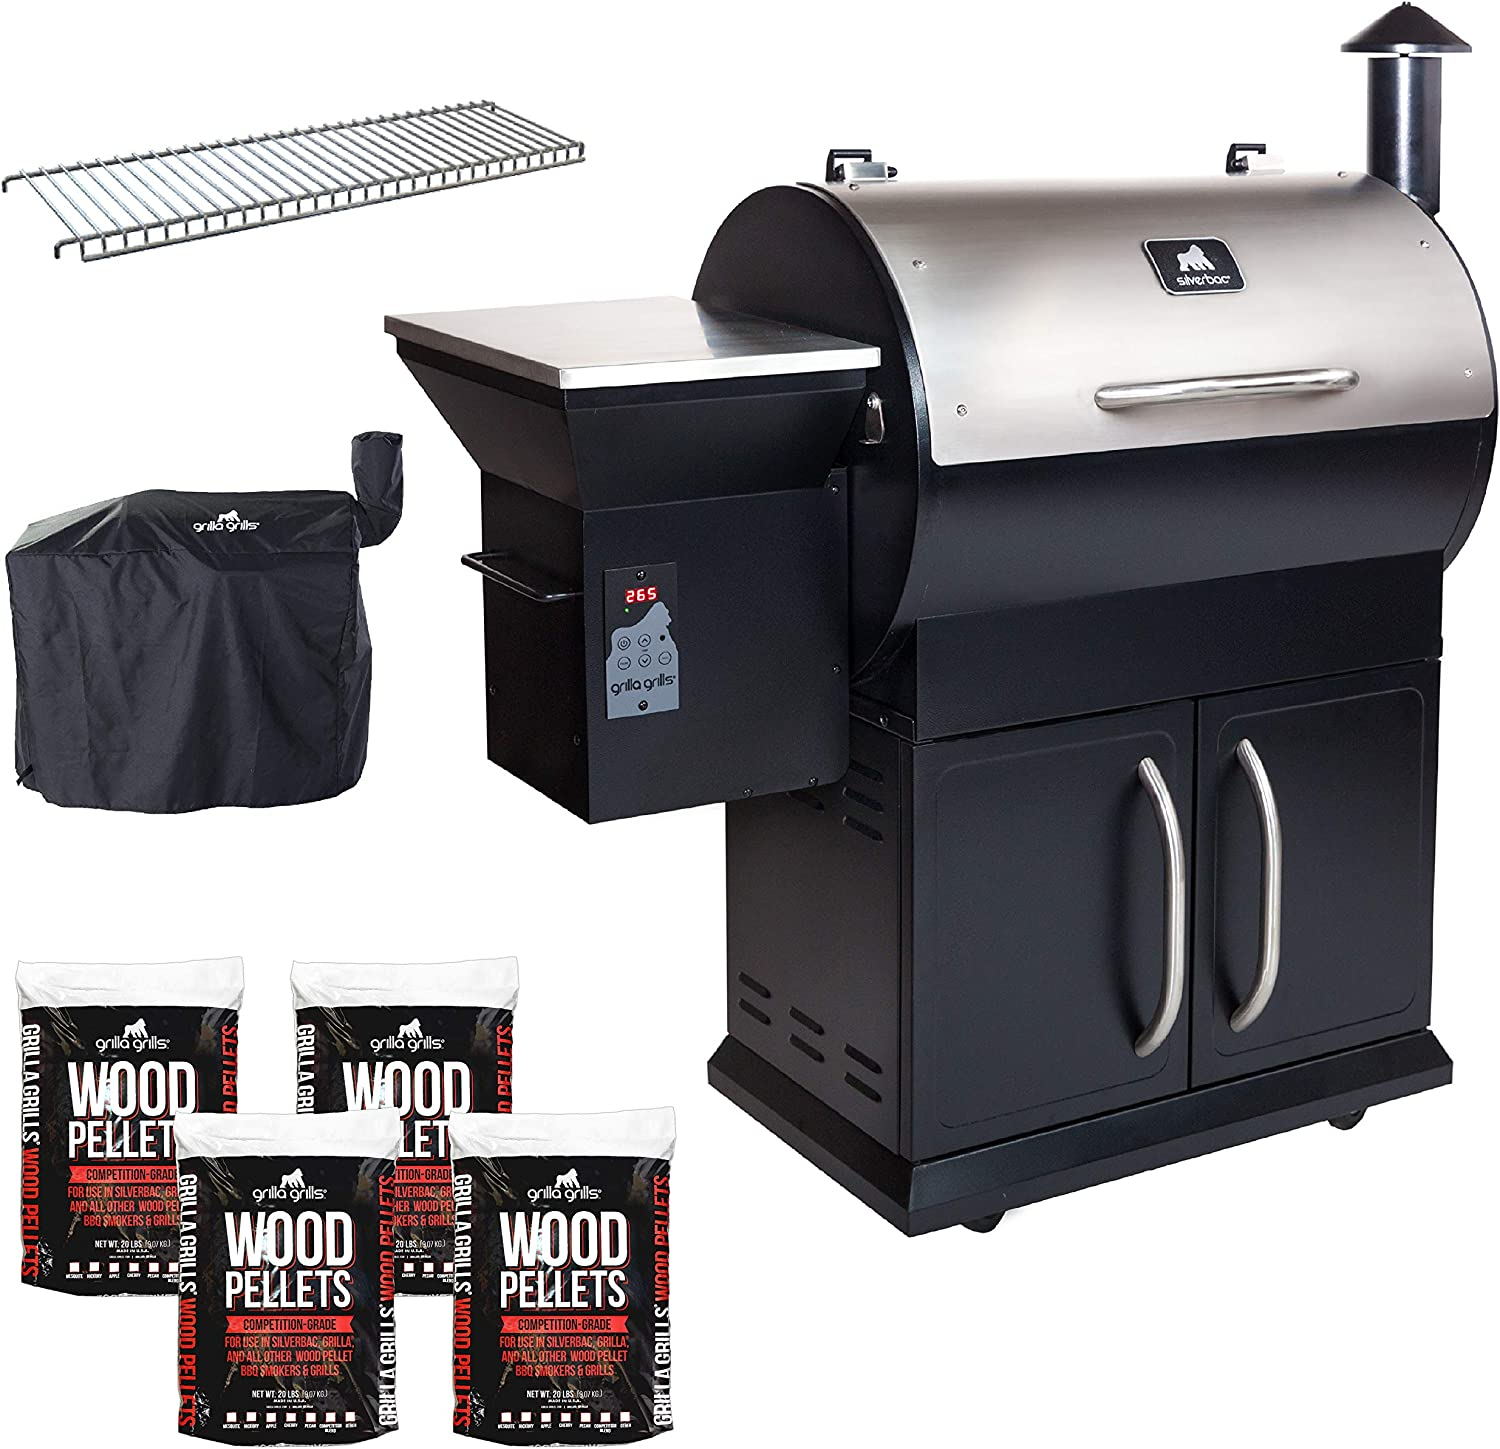 Grilla Grills Smoker and BBQ Wood Pellet Grill